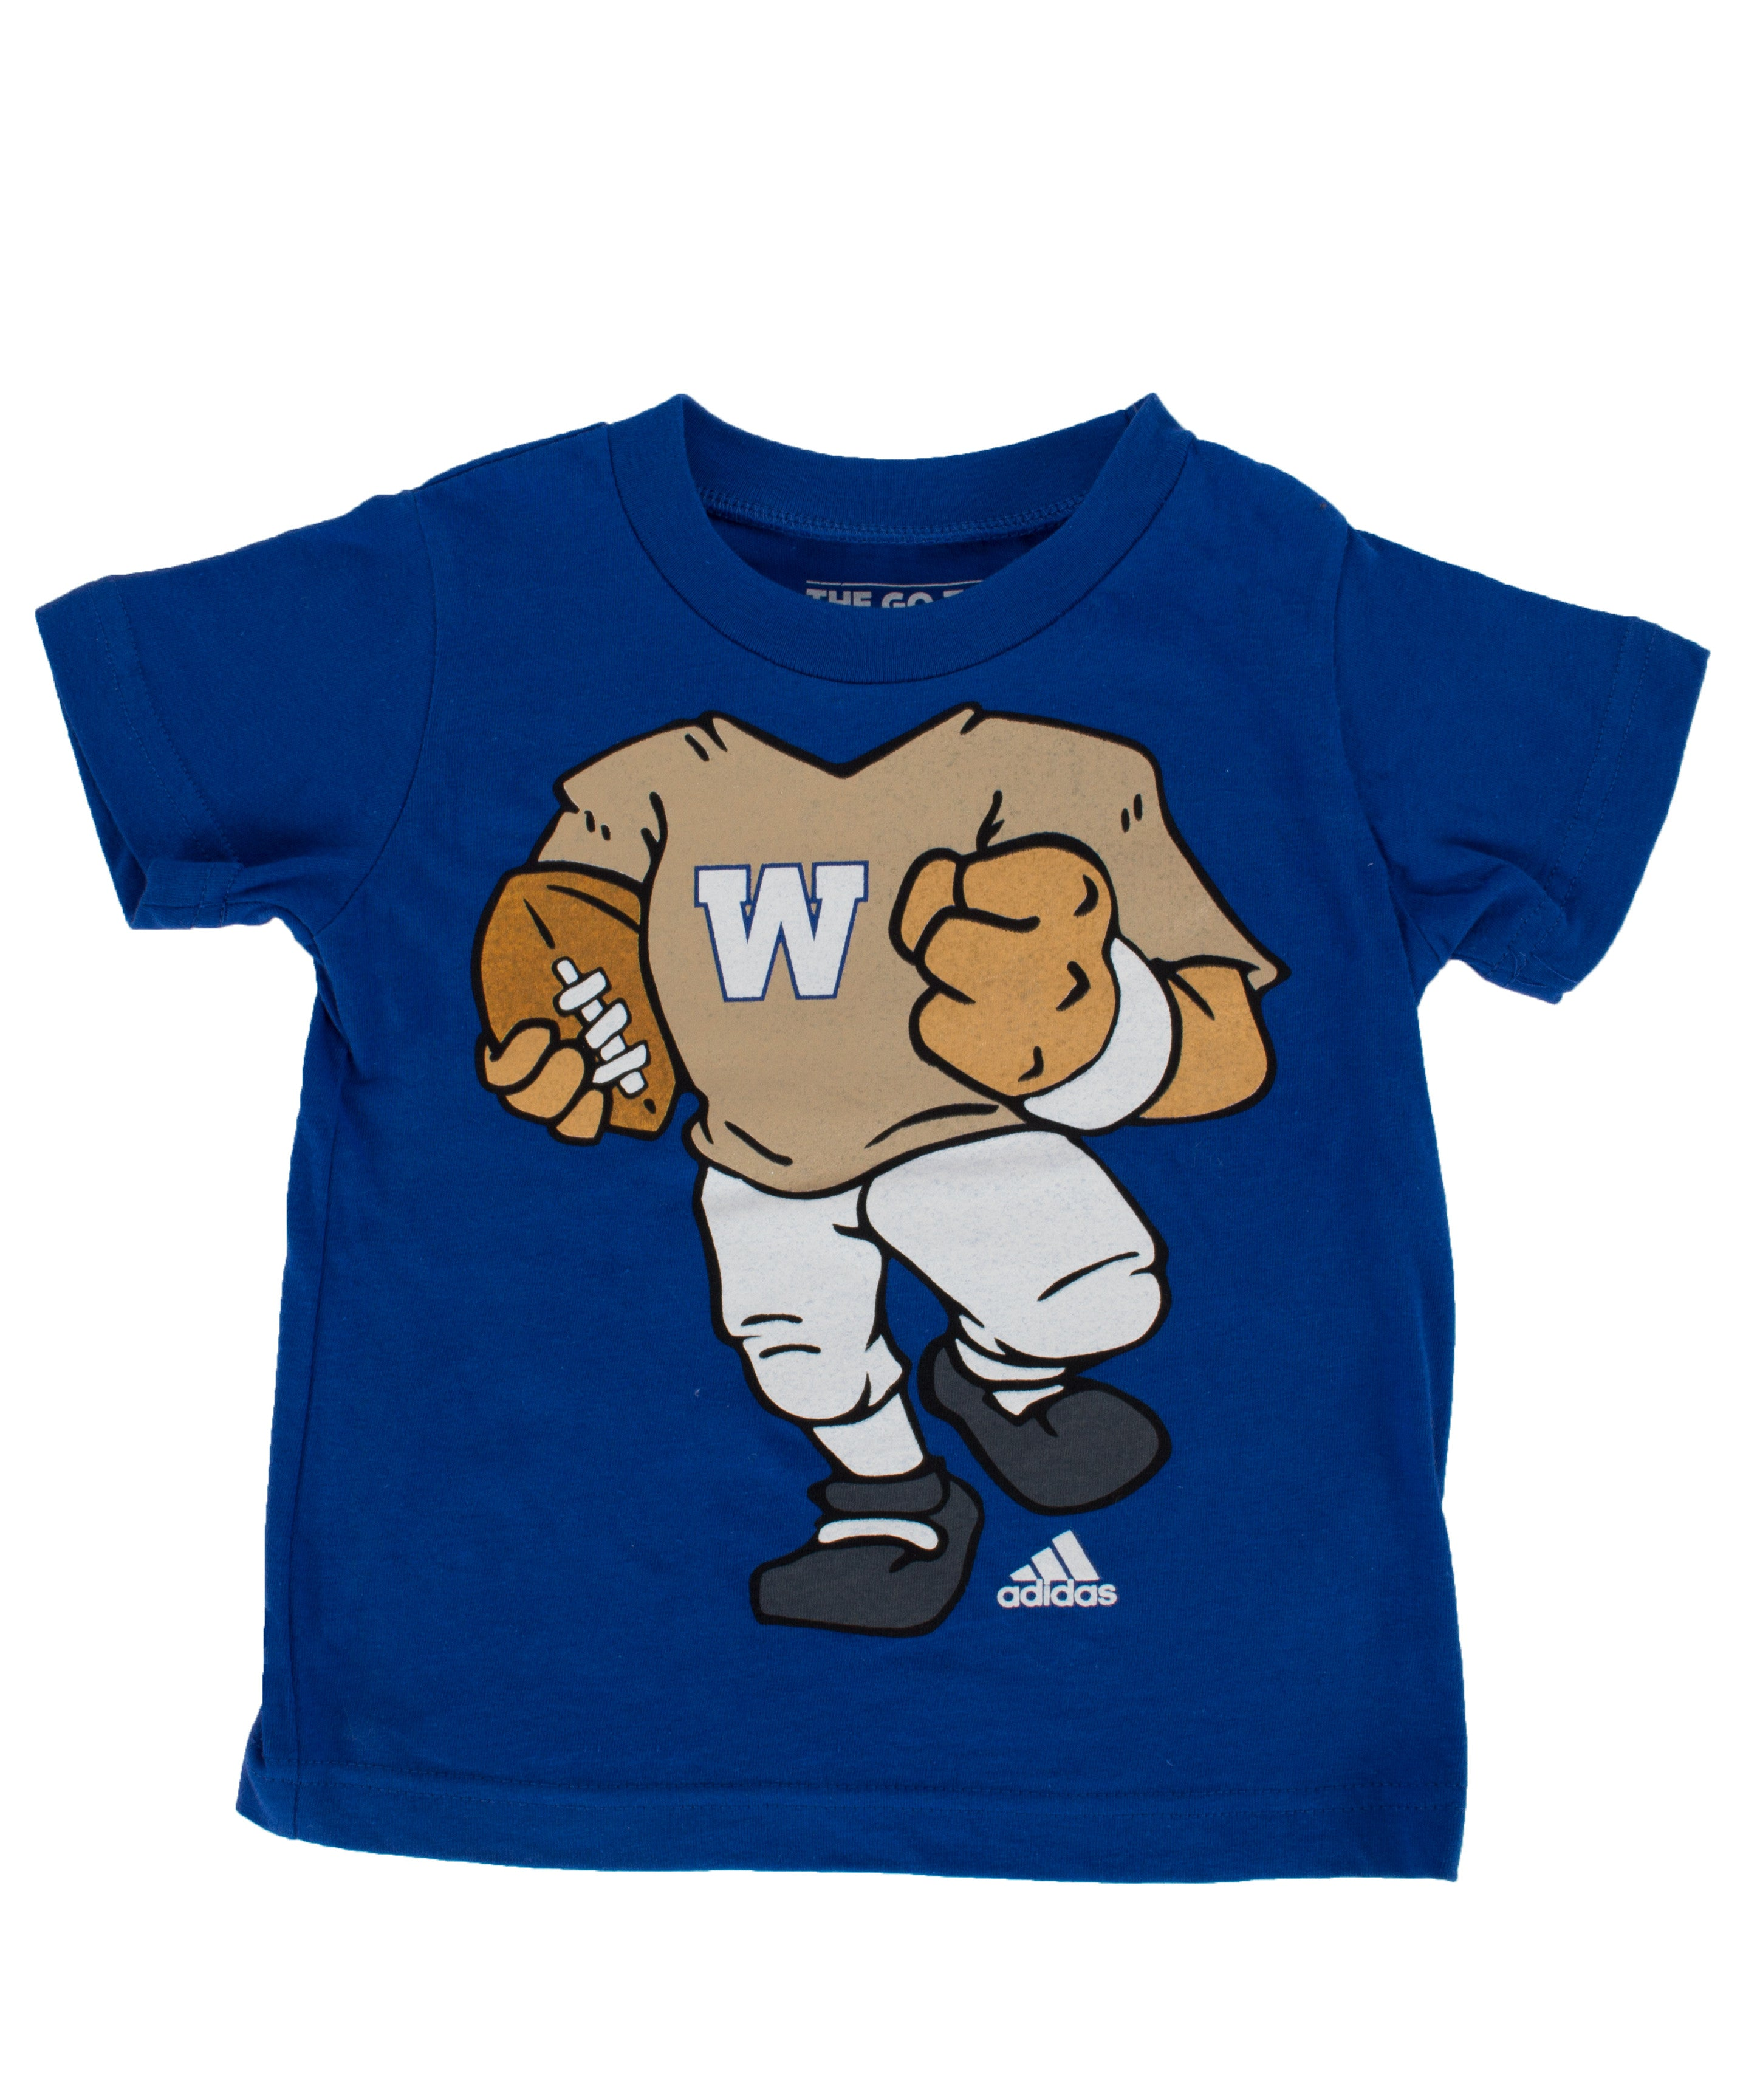 Toddler Football Dreams Tee